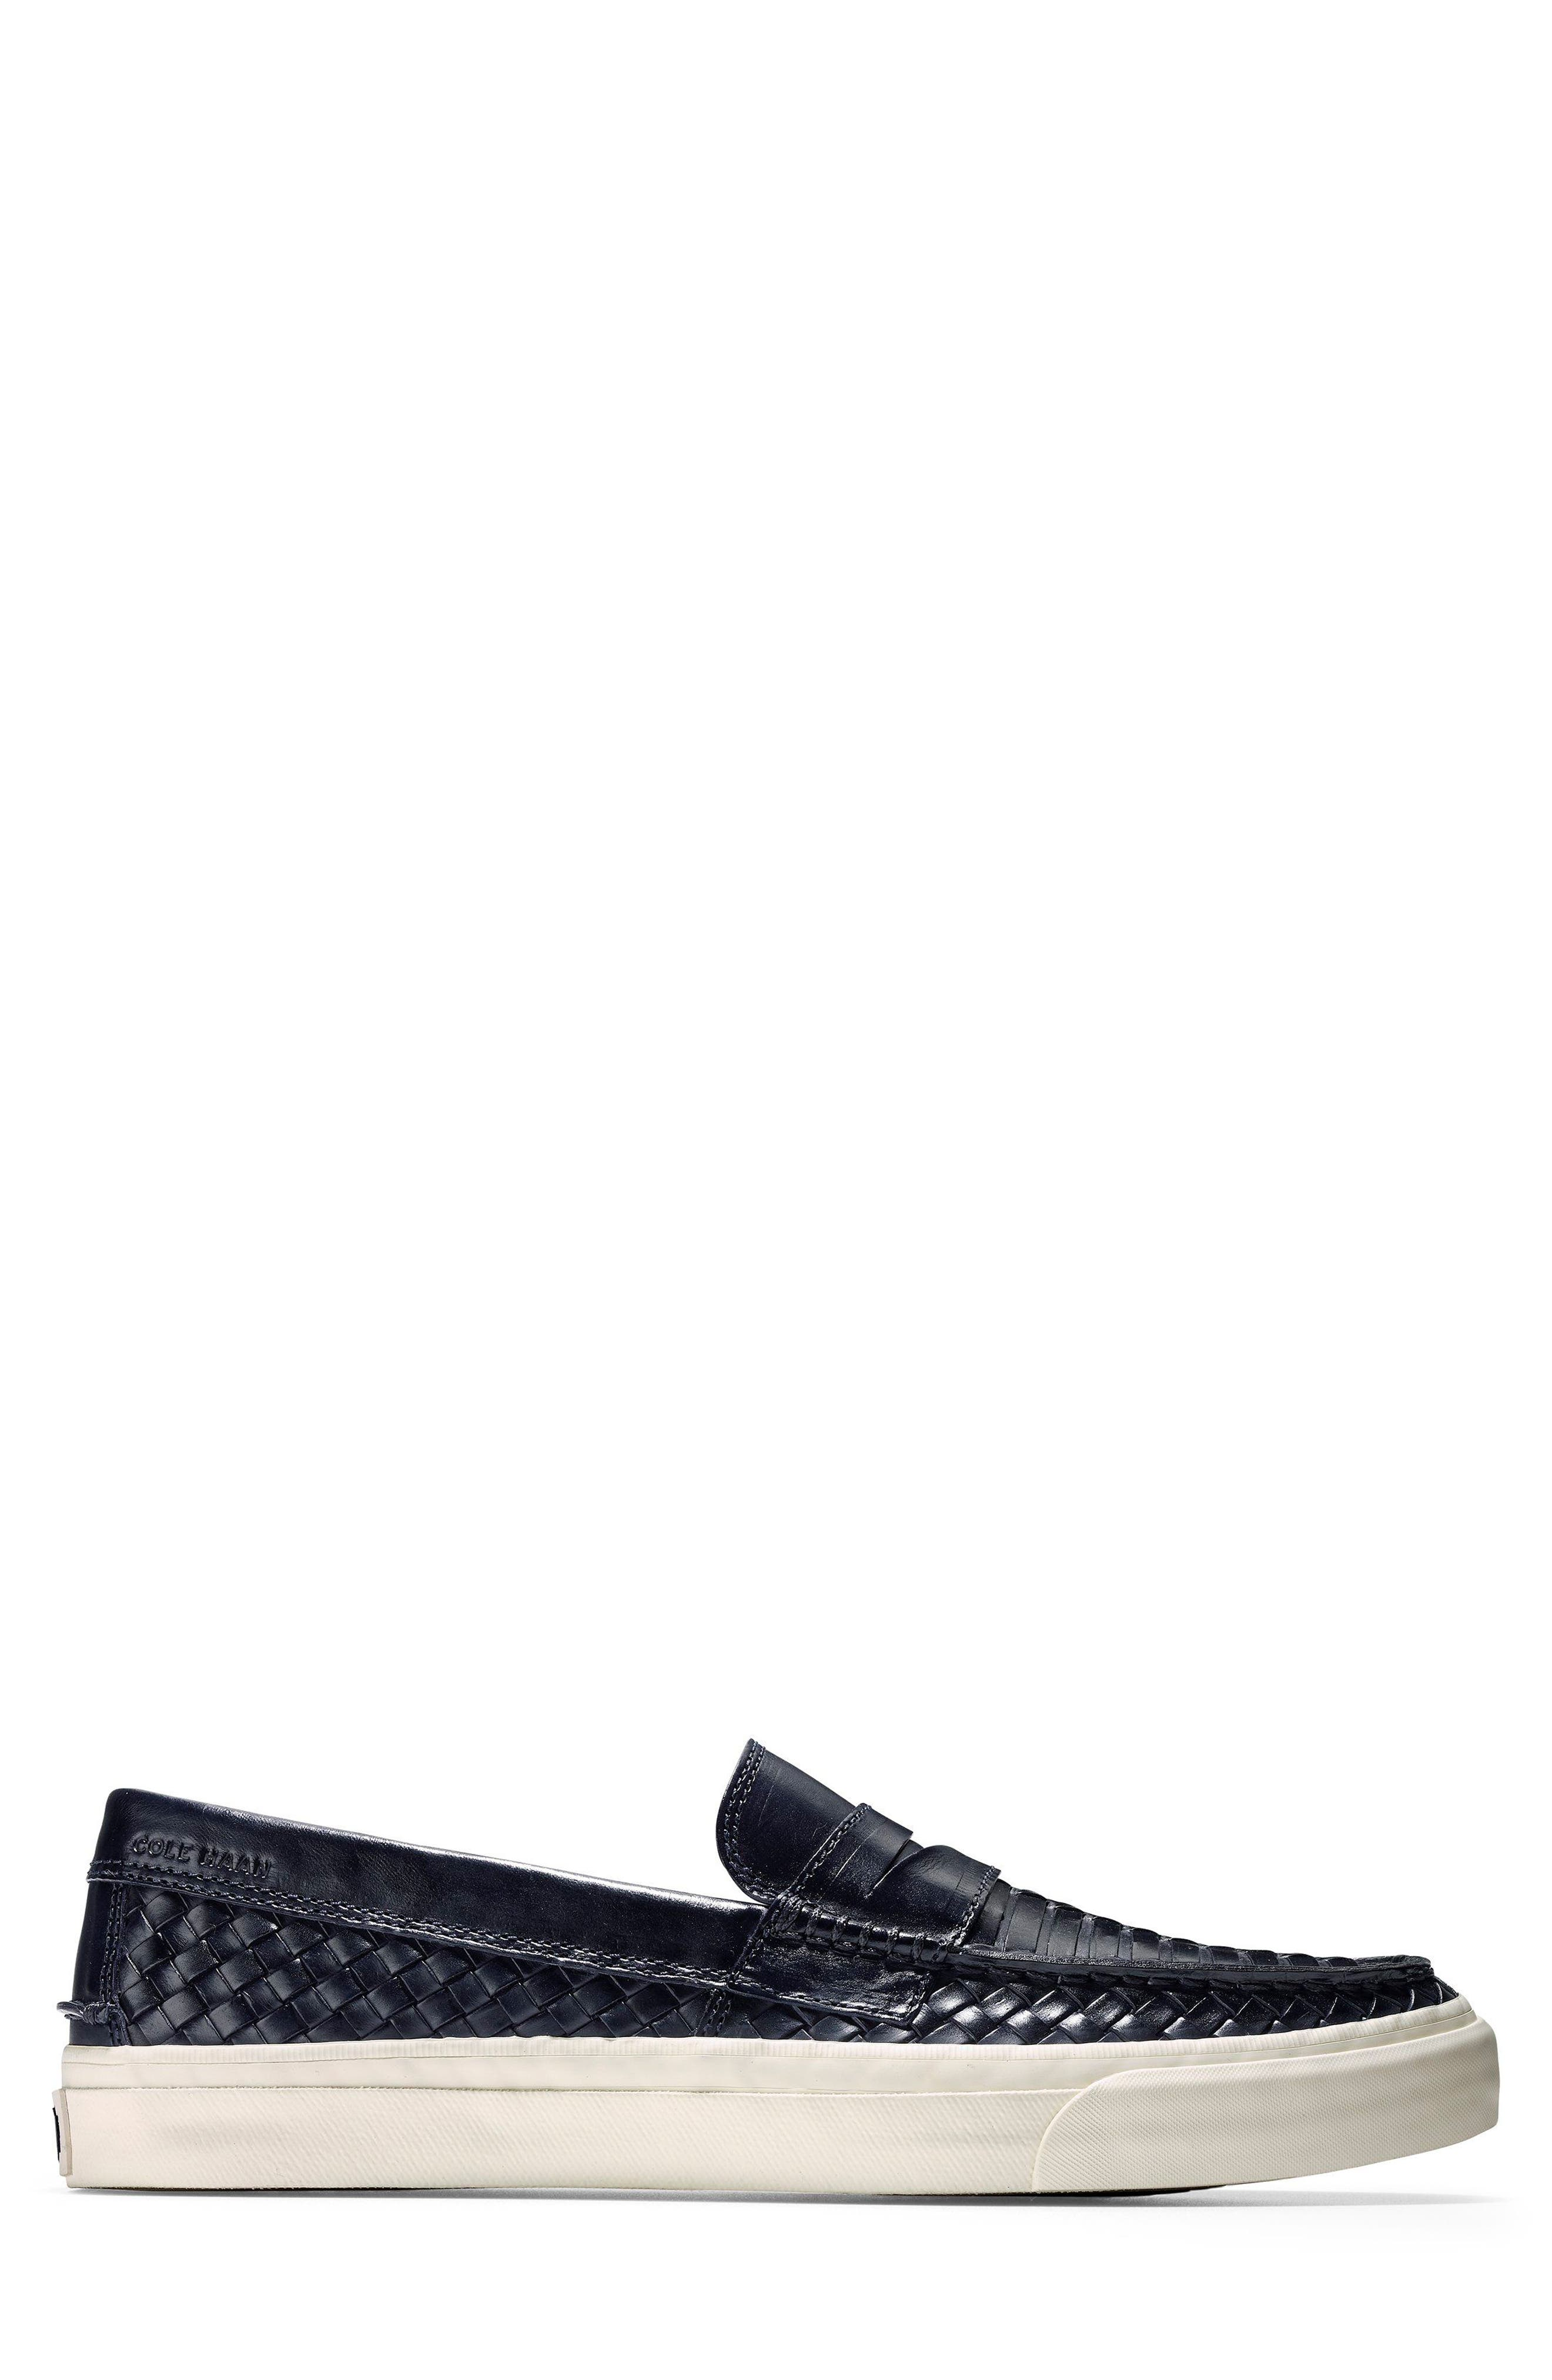 Alternate Image 3  - Cole Haan Pinch Weekender LX Huarache Loafer (Men)